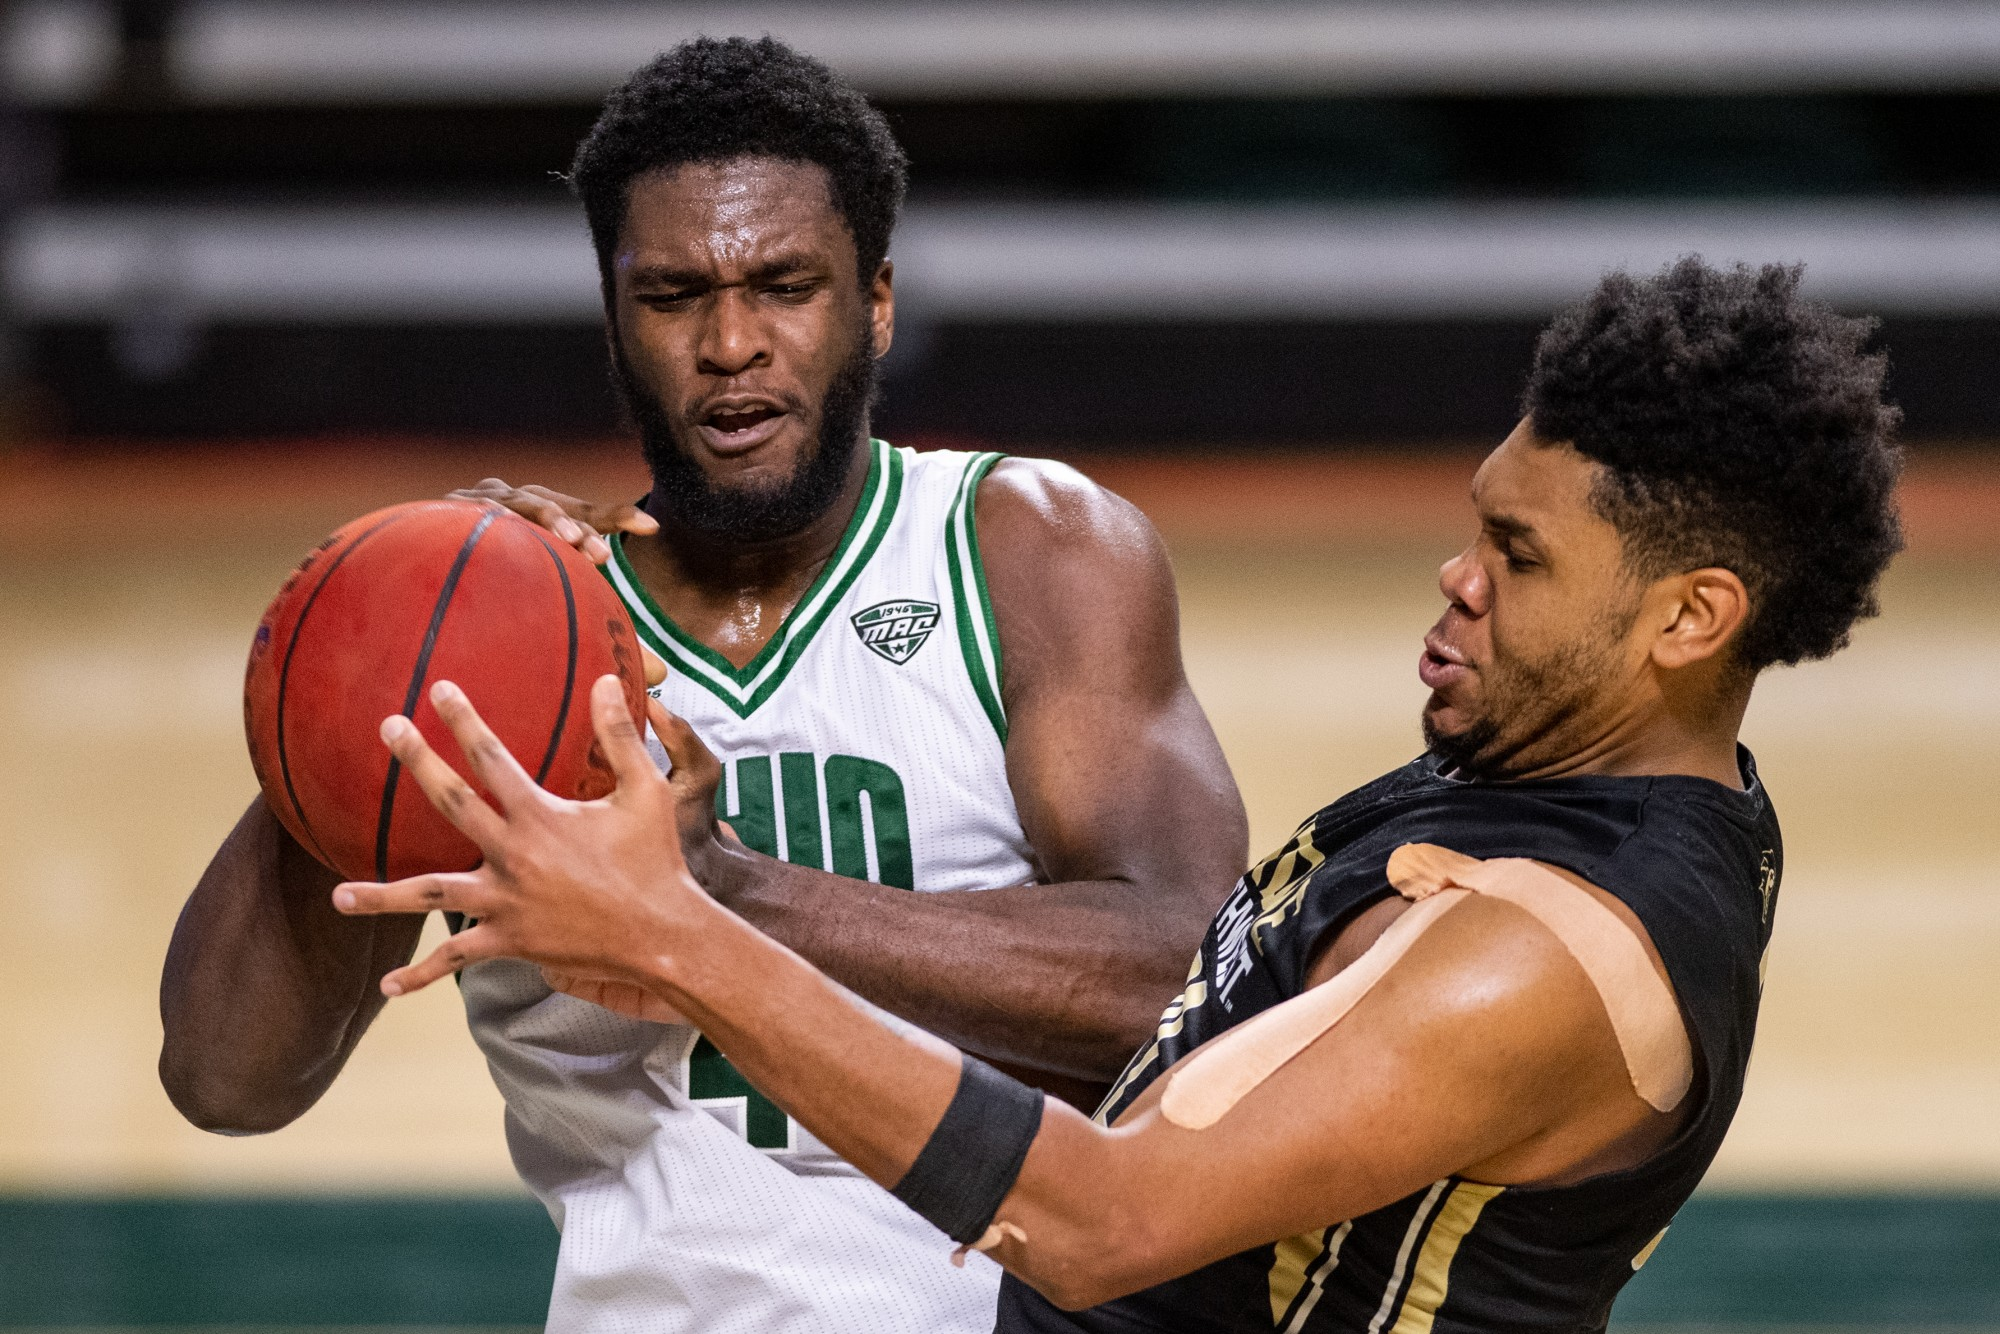 Dwight Wilson III (#4), of Ohio, takes the ball away from Perdue Northwest's Jyrus Freels (#32) during the Bobcats' game versus Perdue Northwest in The Convo on Thursday, Dec. 10, 2020. Ohio won 92-72.